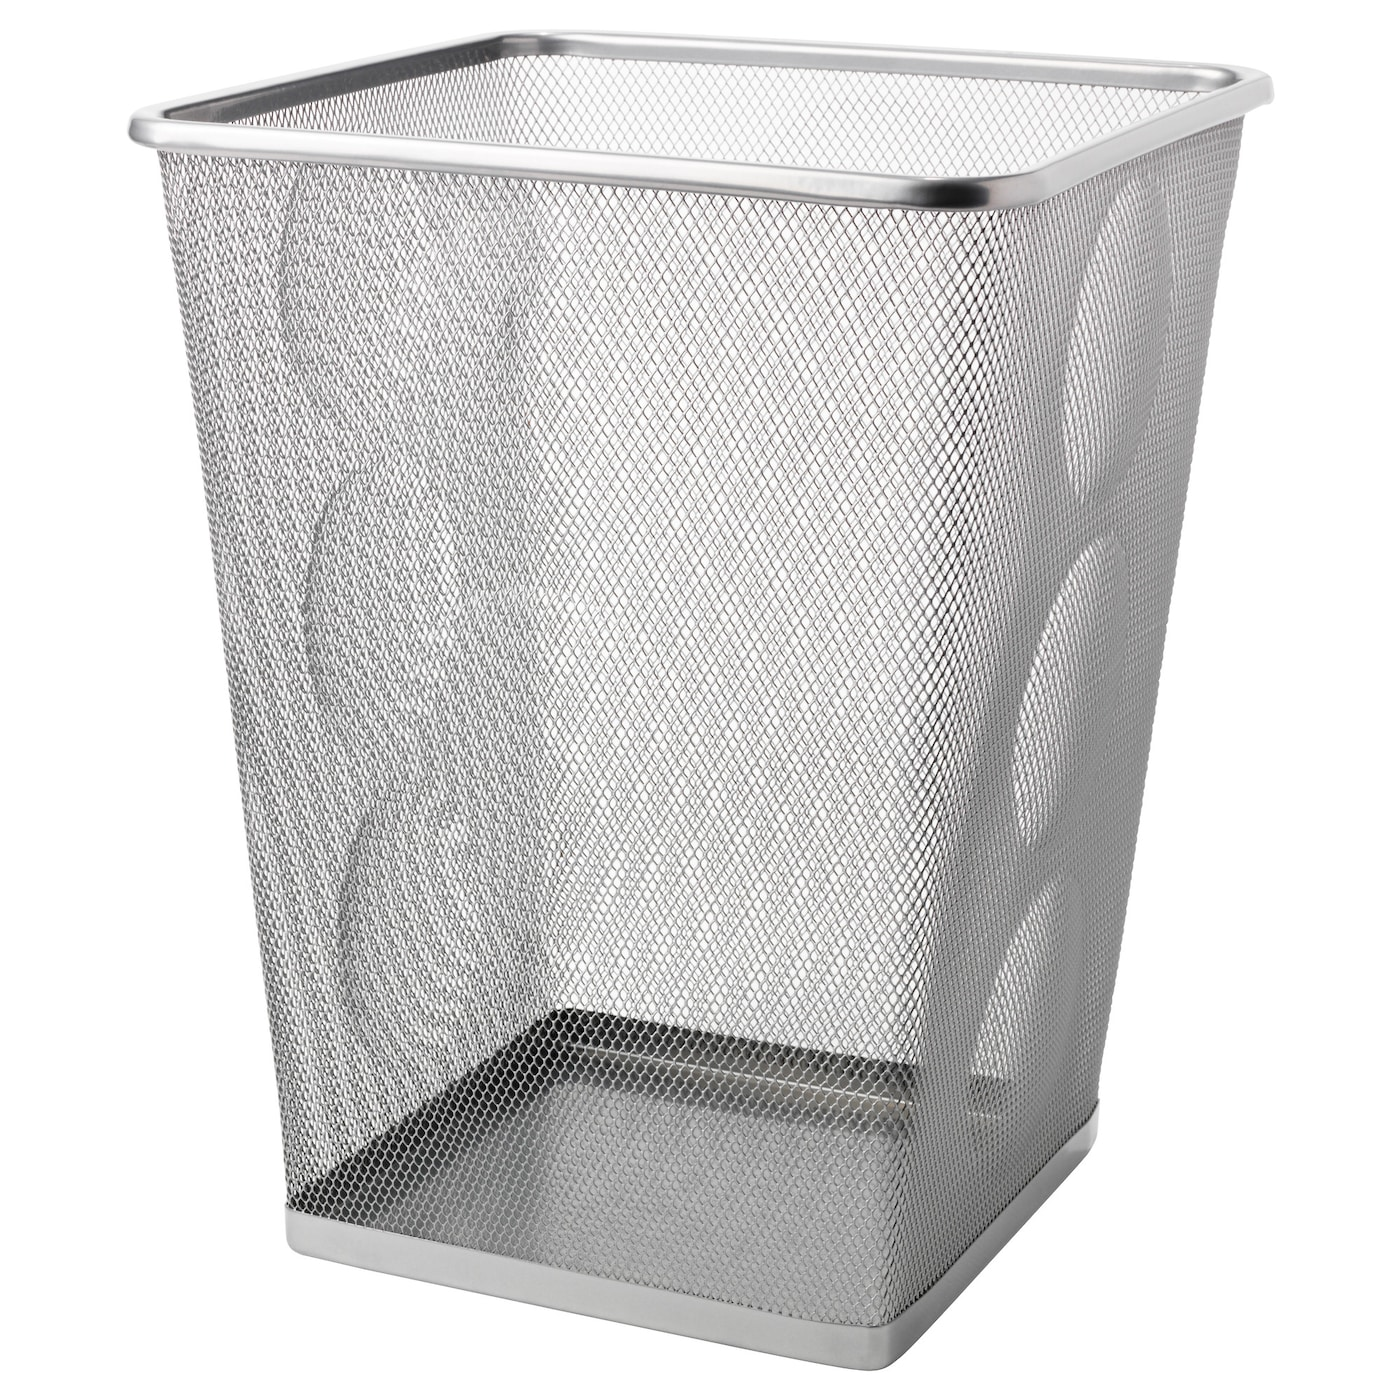 Wastepaper Basket New Dokument Wastepaper Basket Silvercolour  Ikea Inspiration